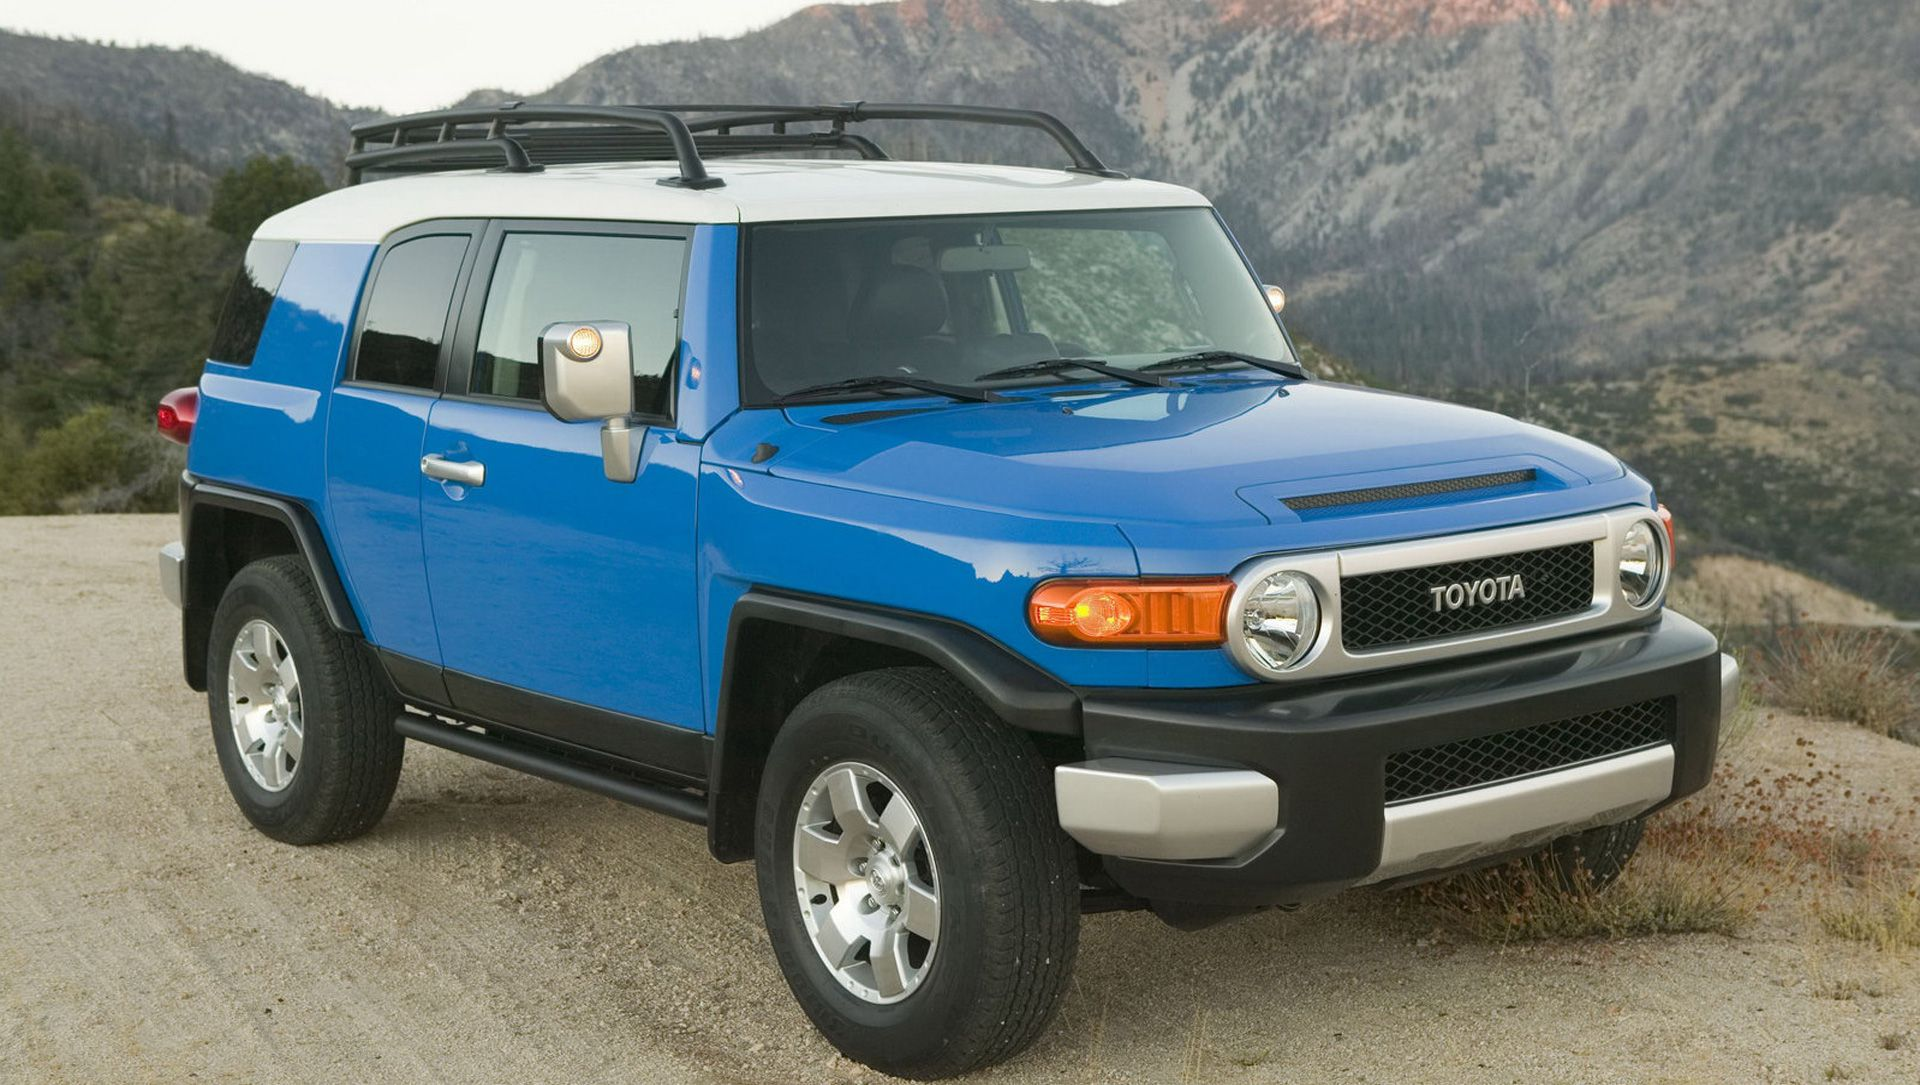 2013 Toyota FJ Cruiser Adds New Cement Grey Trail Teams Special Edition  Model